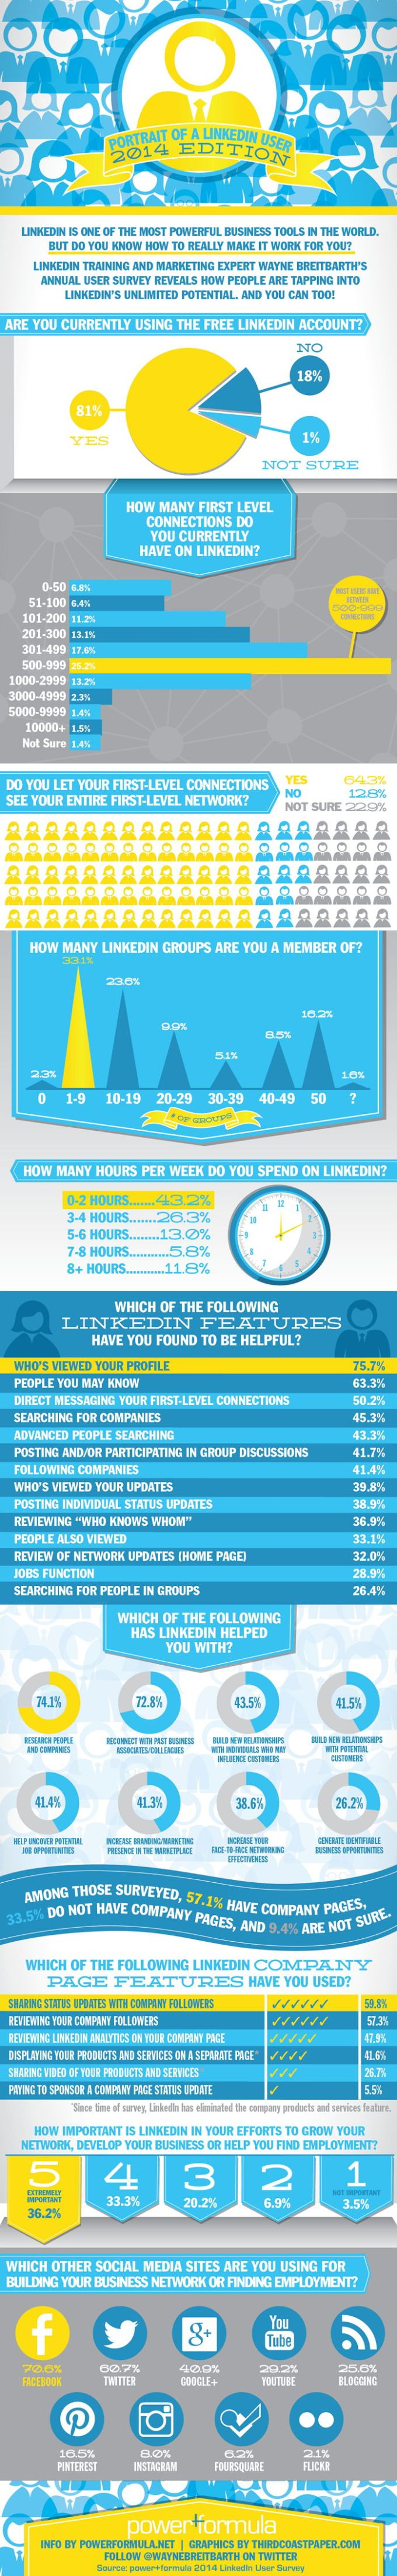 linkedin-how-users